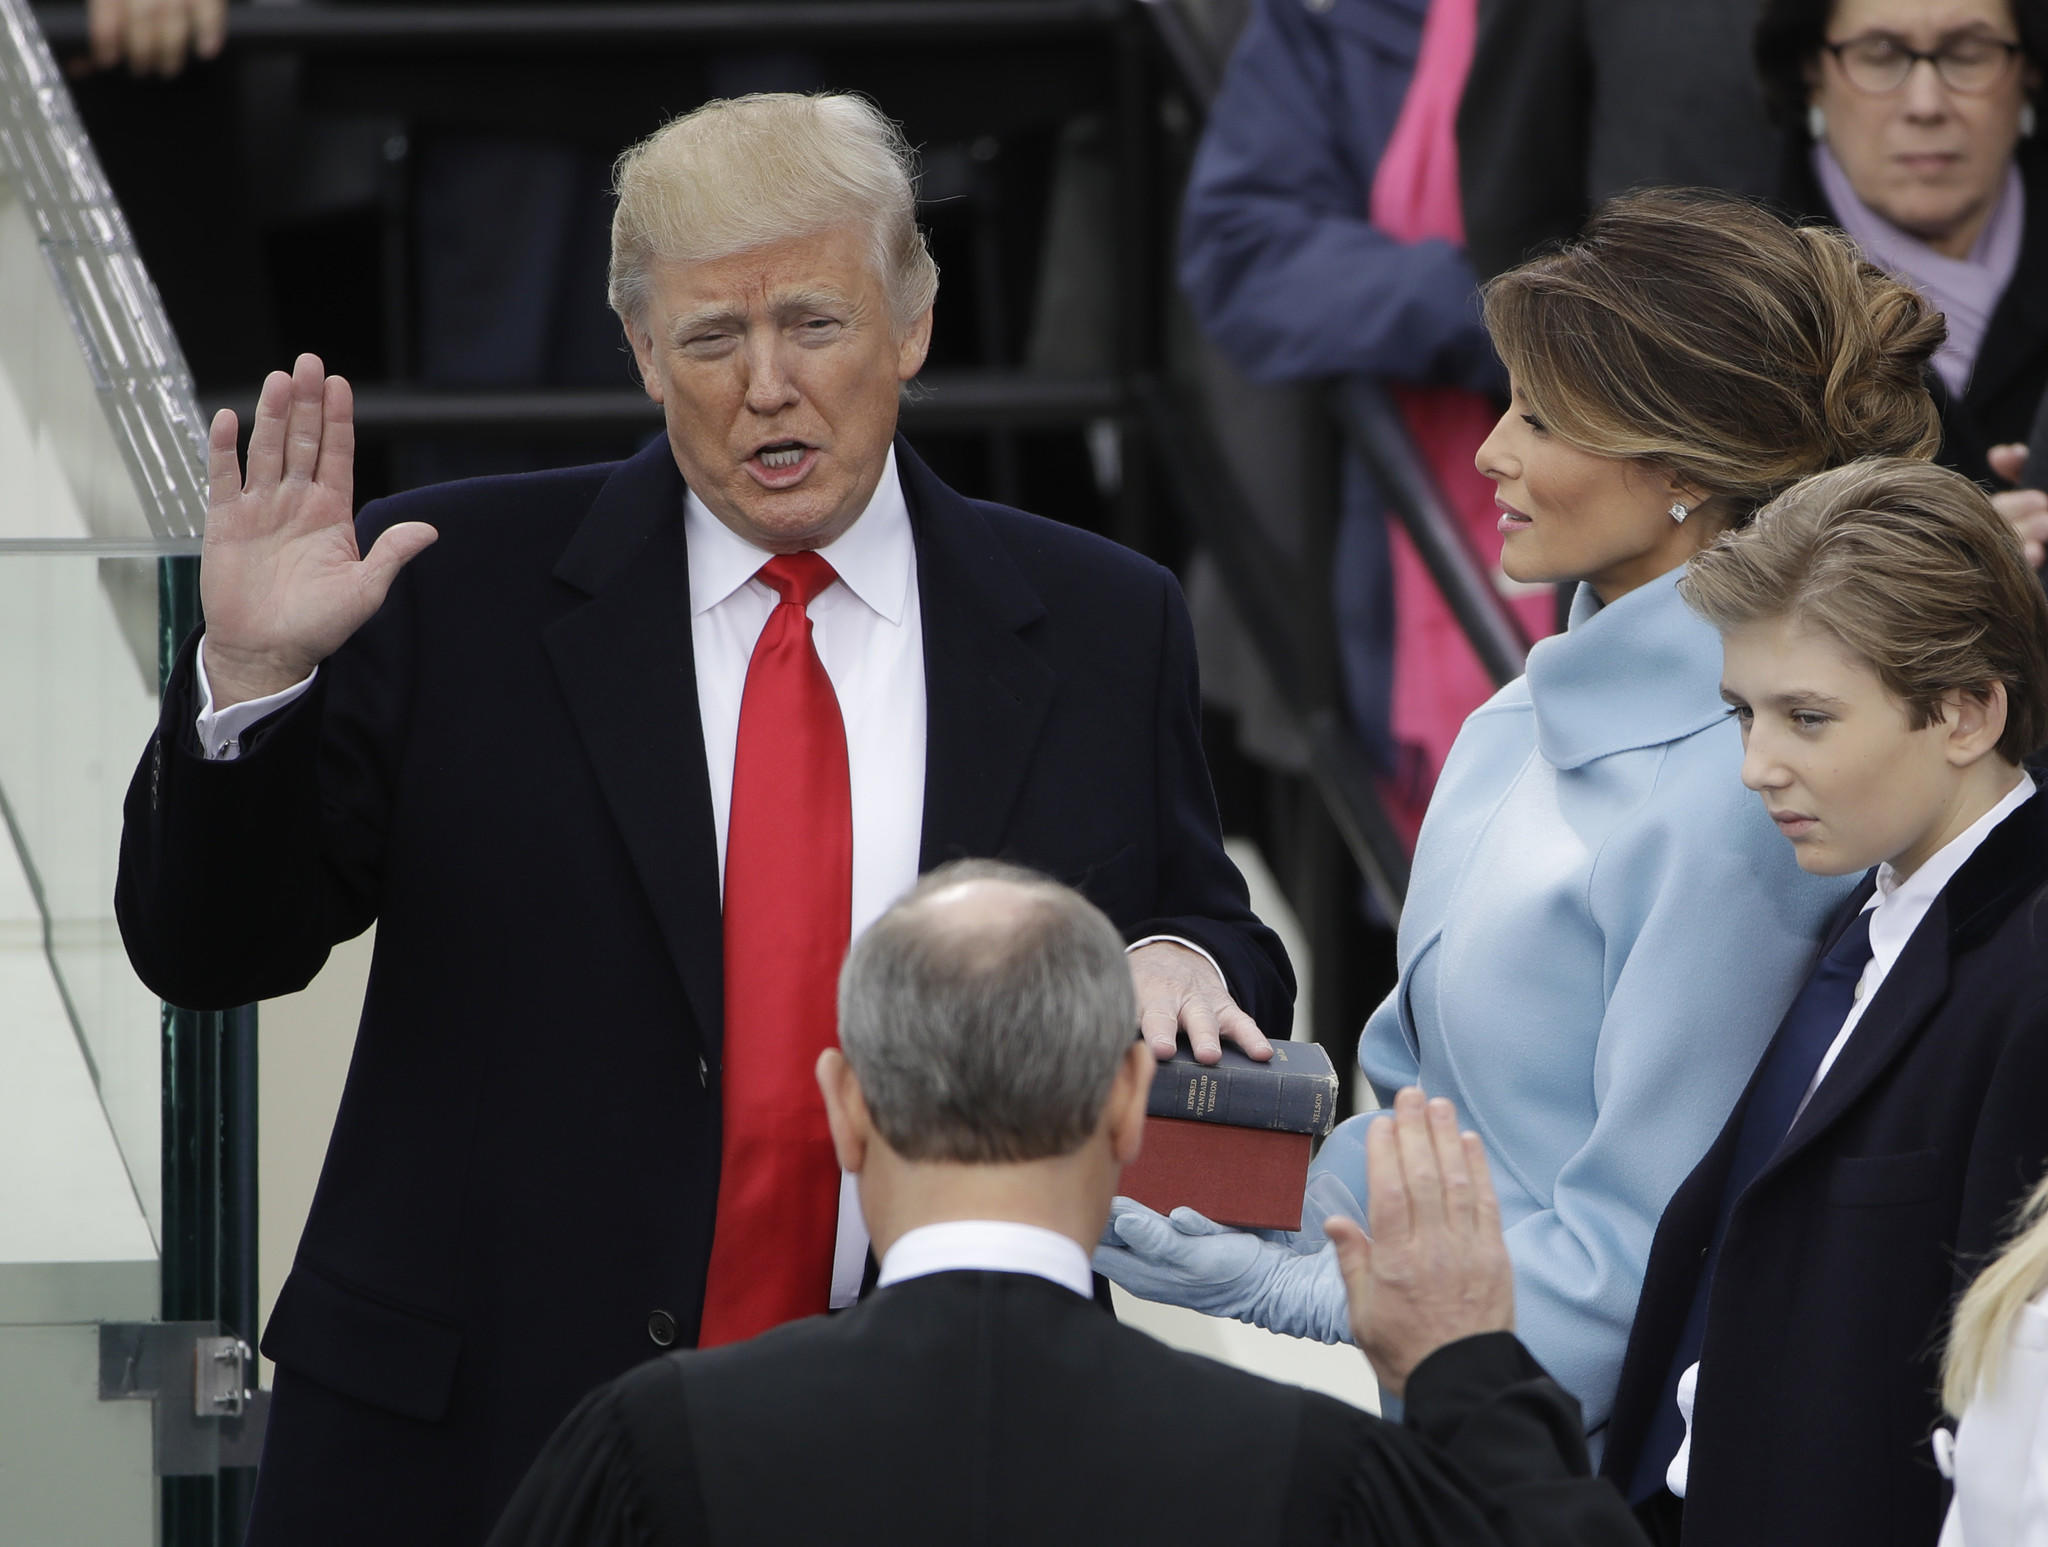 Donald Trump is sworn in as the 45th president of the United States by Chief Justice John G. Roberts Jr.